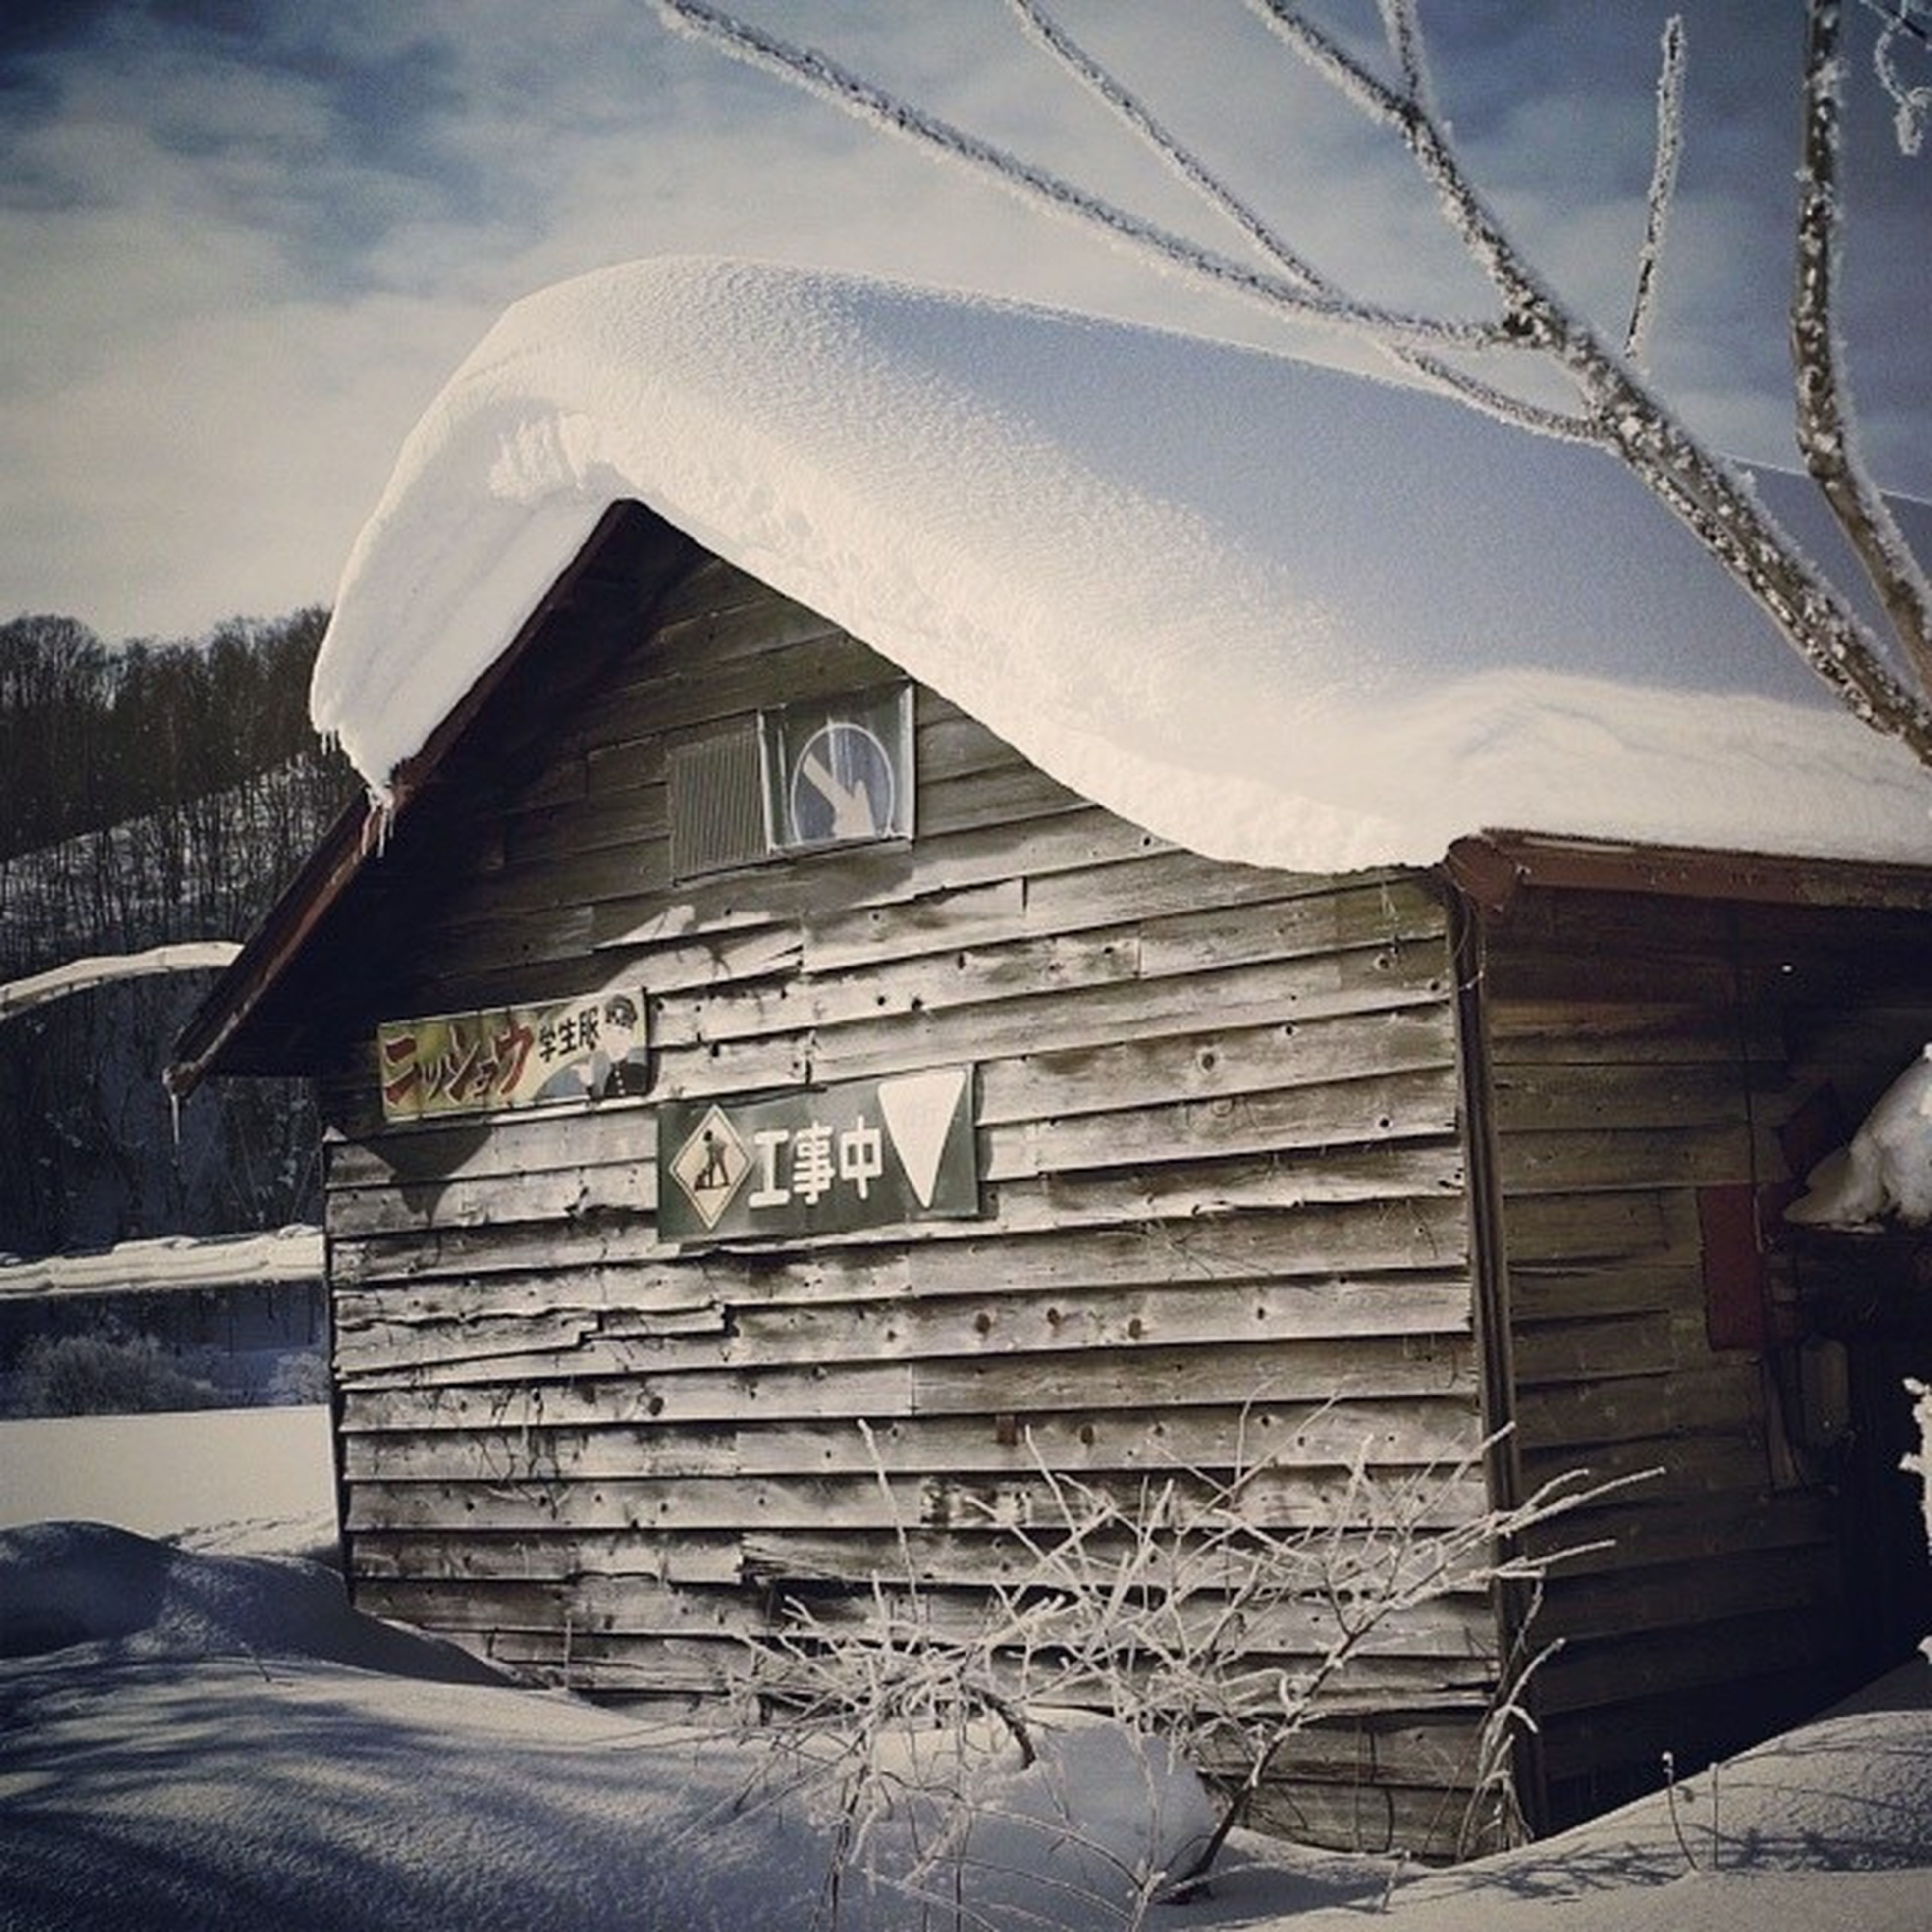 built structure, building exterior, architecture, abandoned, house, obsolete, sky, damaged, old, wood - material, run-down, deterioration, snow, roof, winter, outdoors, day, barn, no people, cold temperature